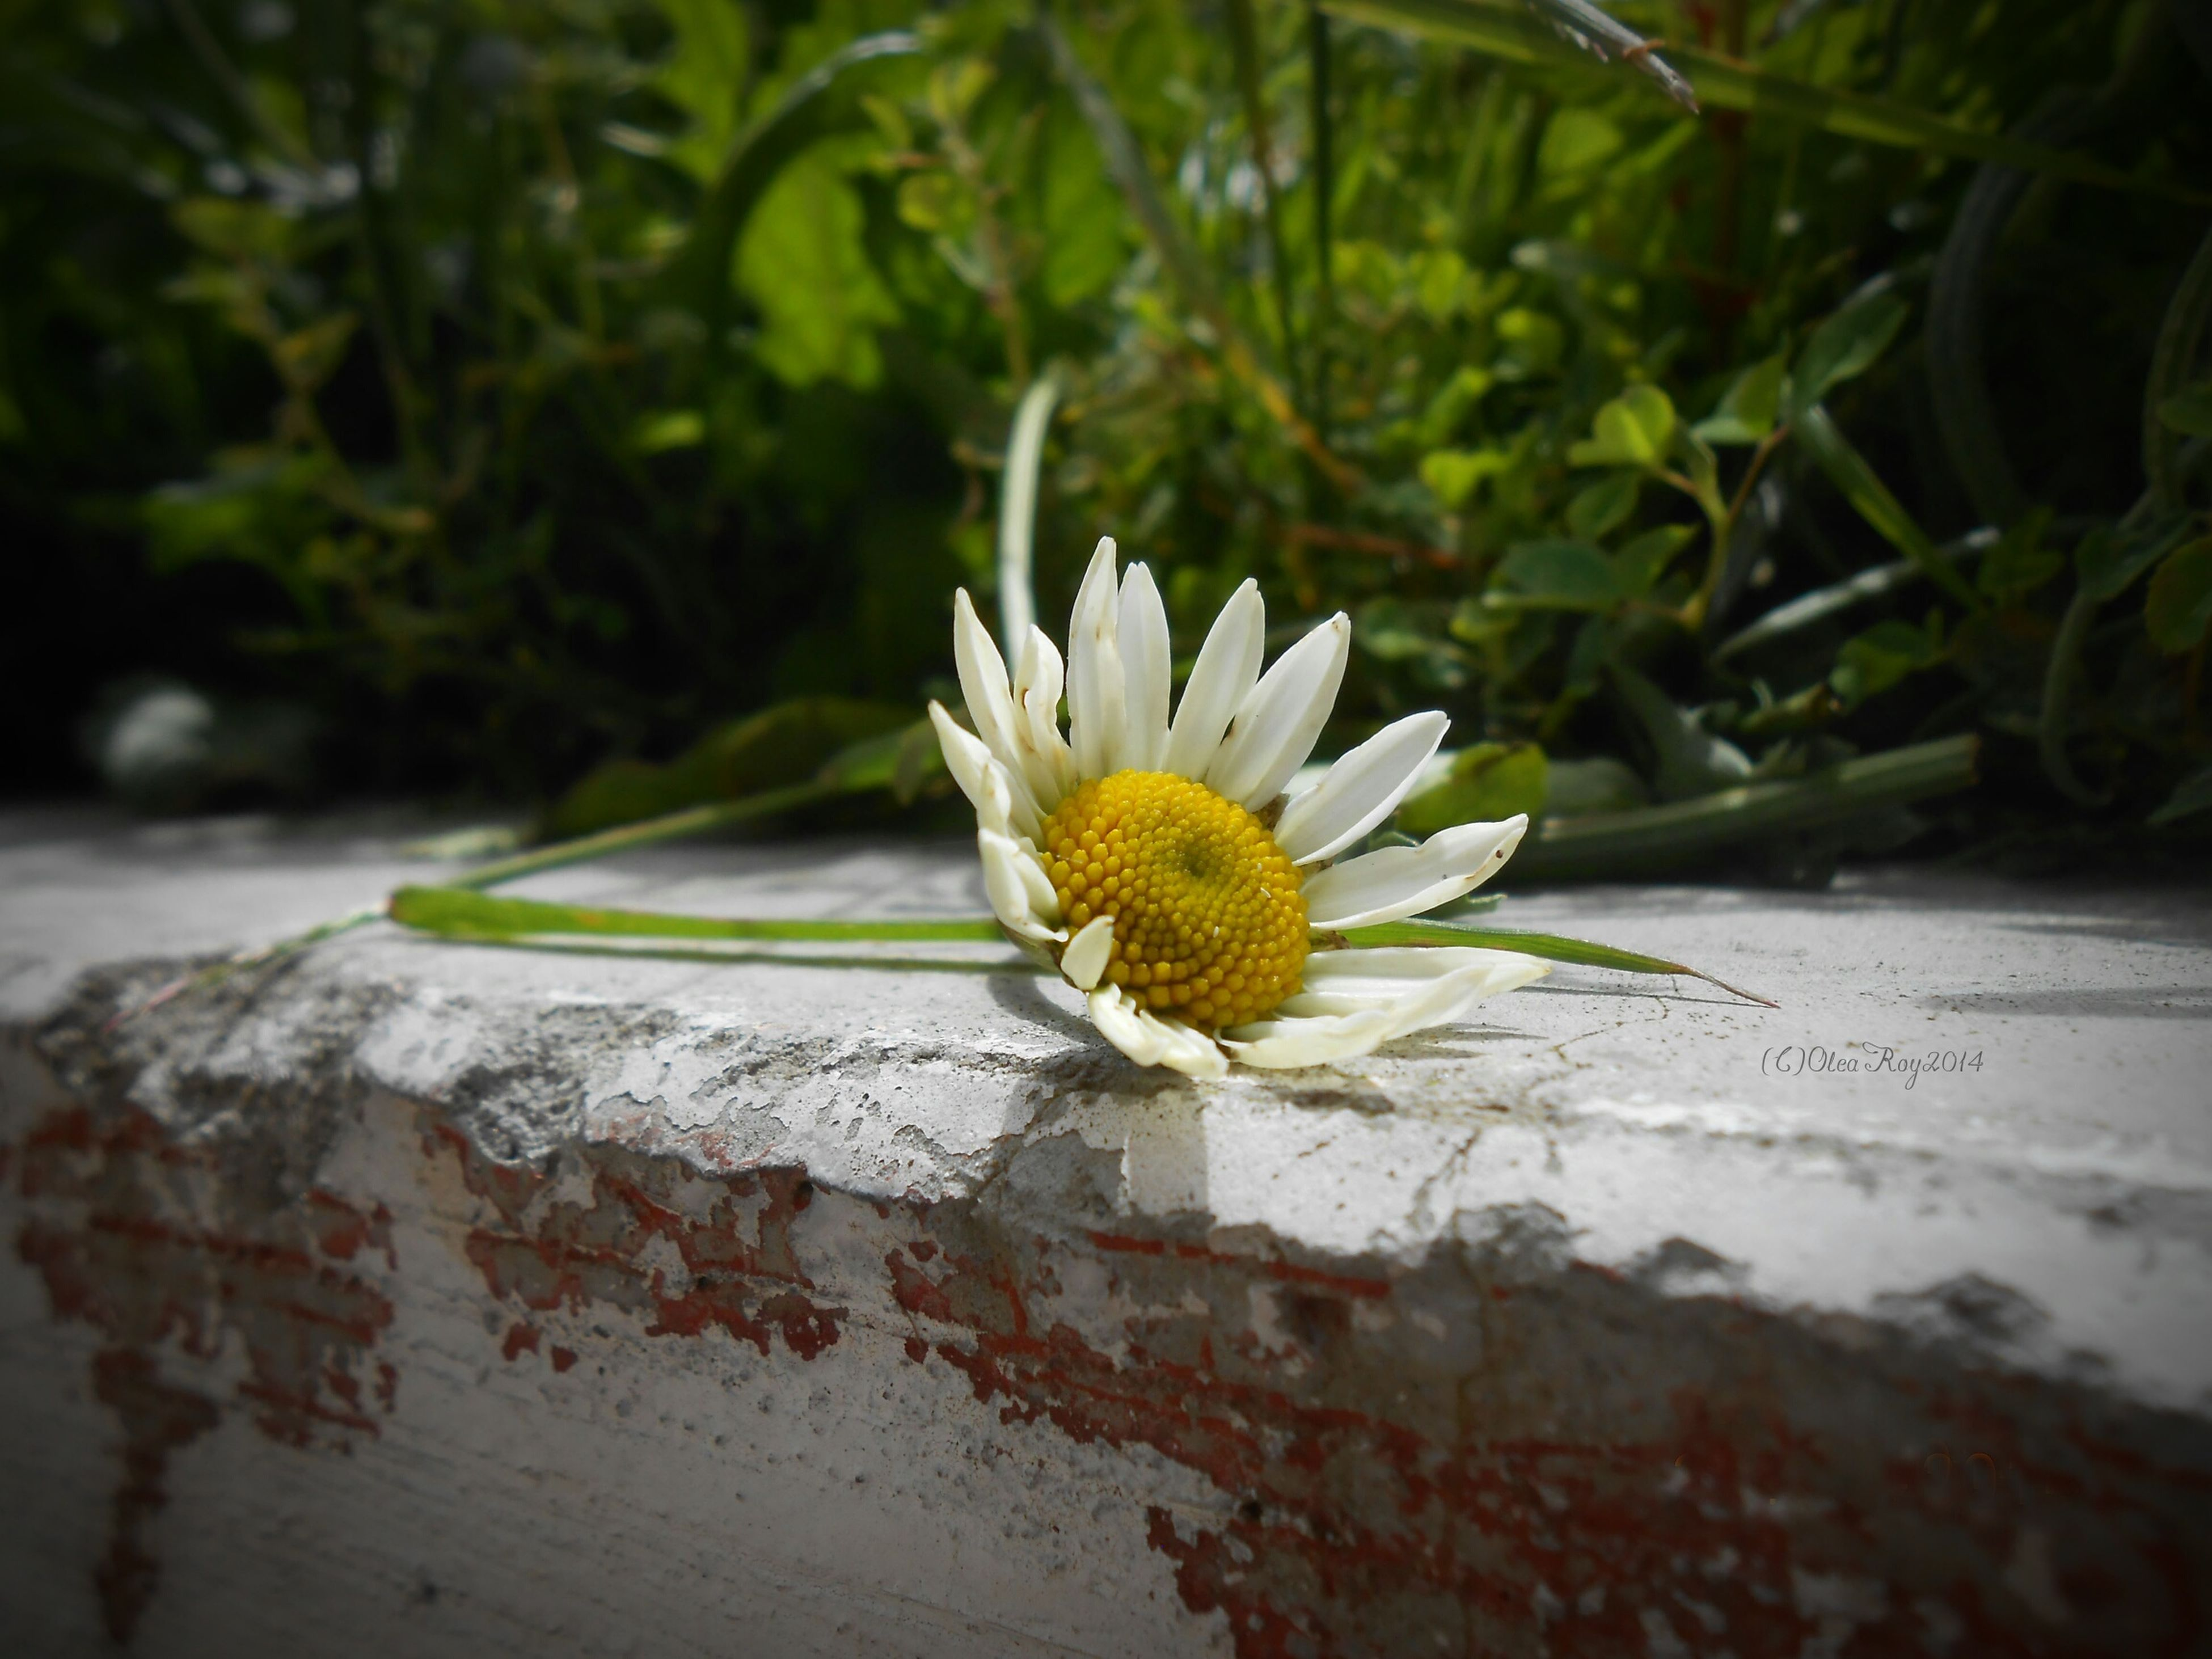 flower, petal, flower head, fragility, freshness, white color, close-up, single flower, pollen, growth, focus on foreground, plant, blooming, beauty in nature, nature, daisy, white, day, outdoors, no people